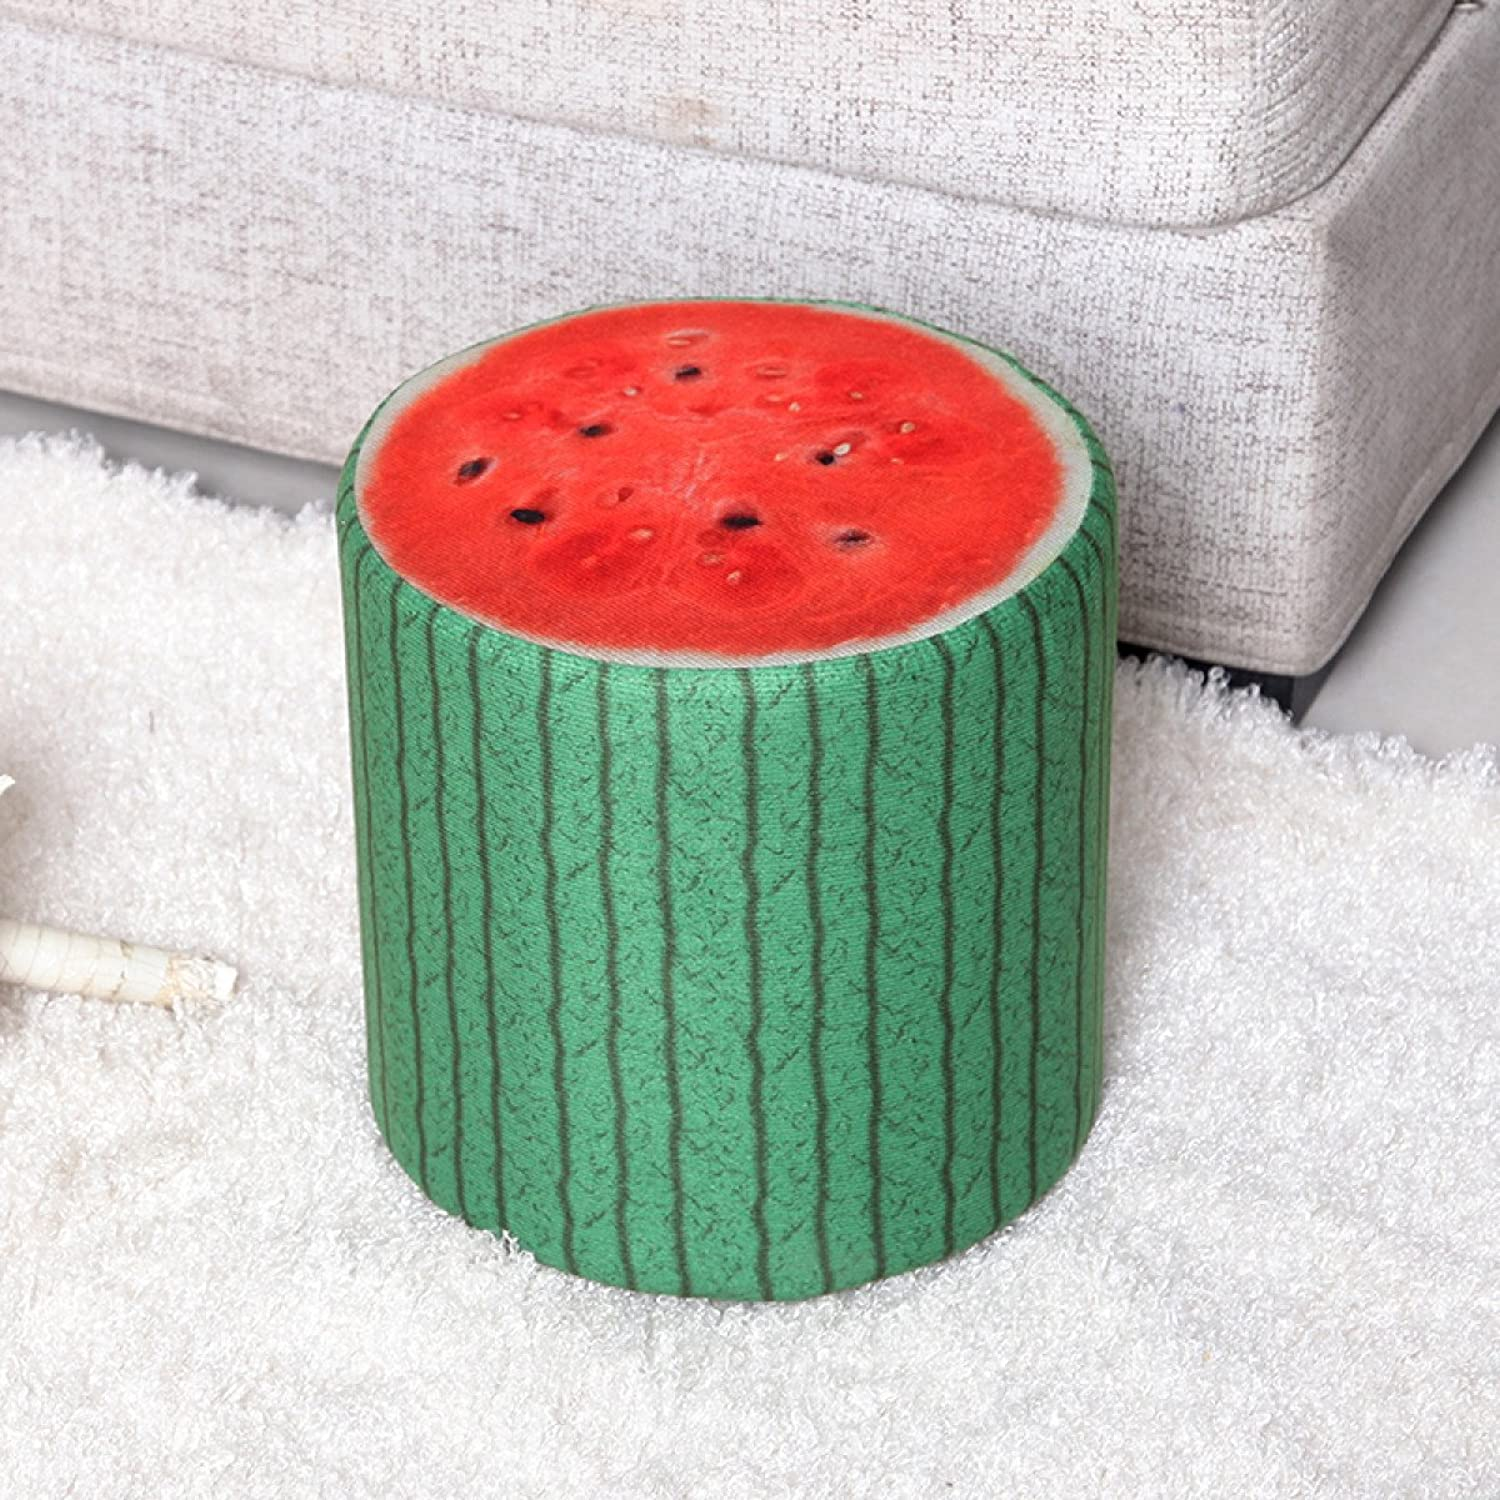 Solid Wood Sofa Fabric Stool Creative Pattern Round Sitting Fashion Home Bedroom Living Room Bench,H